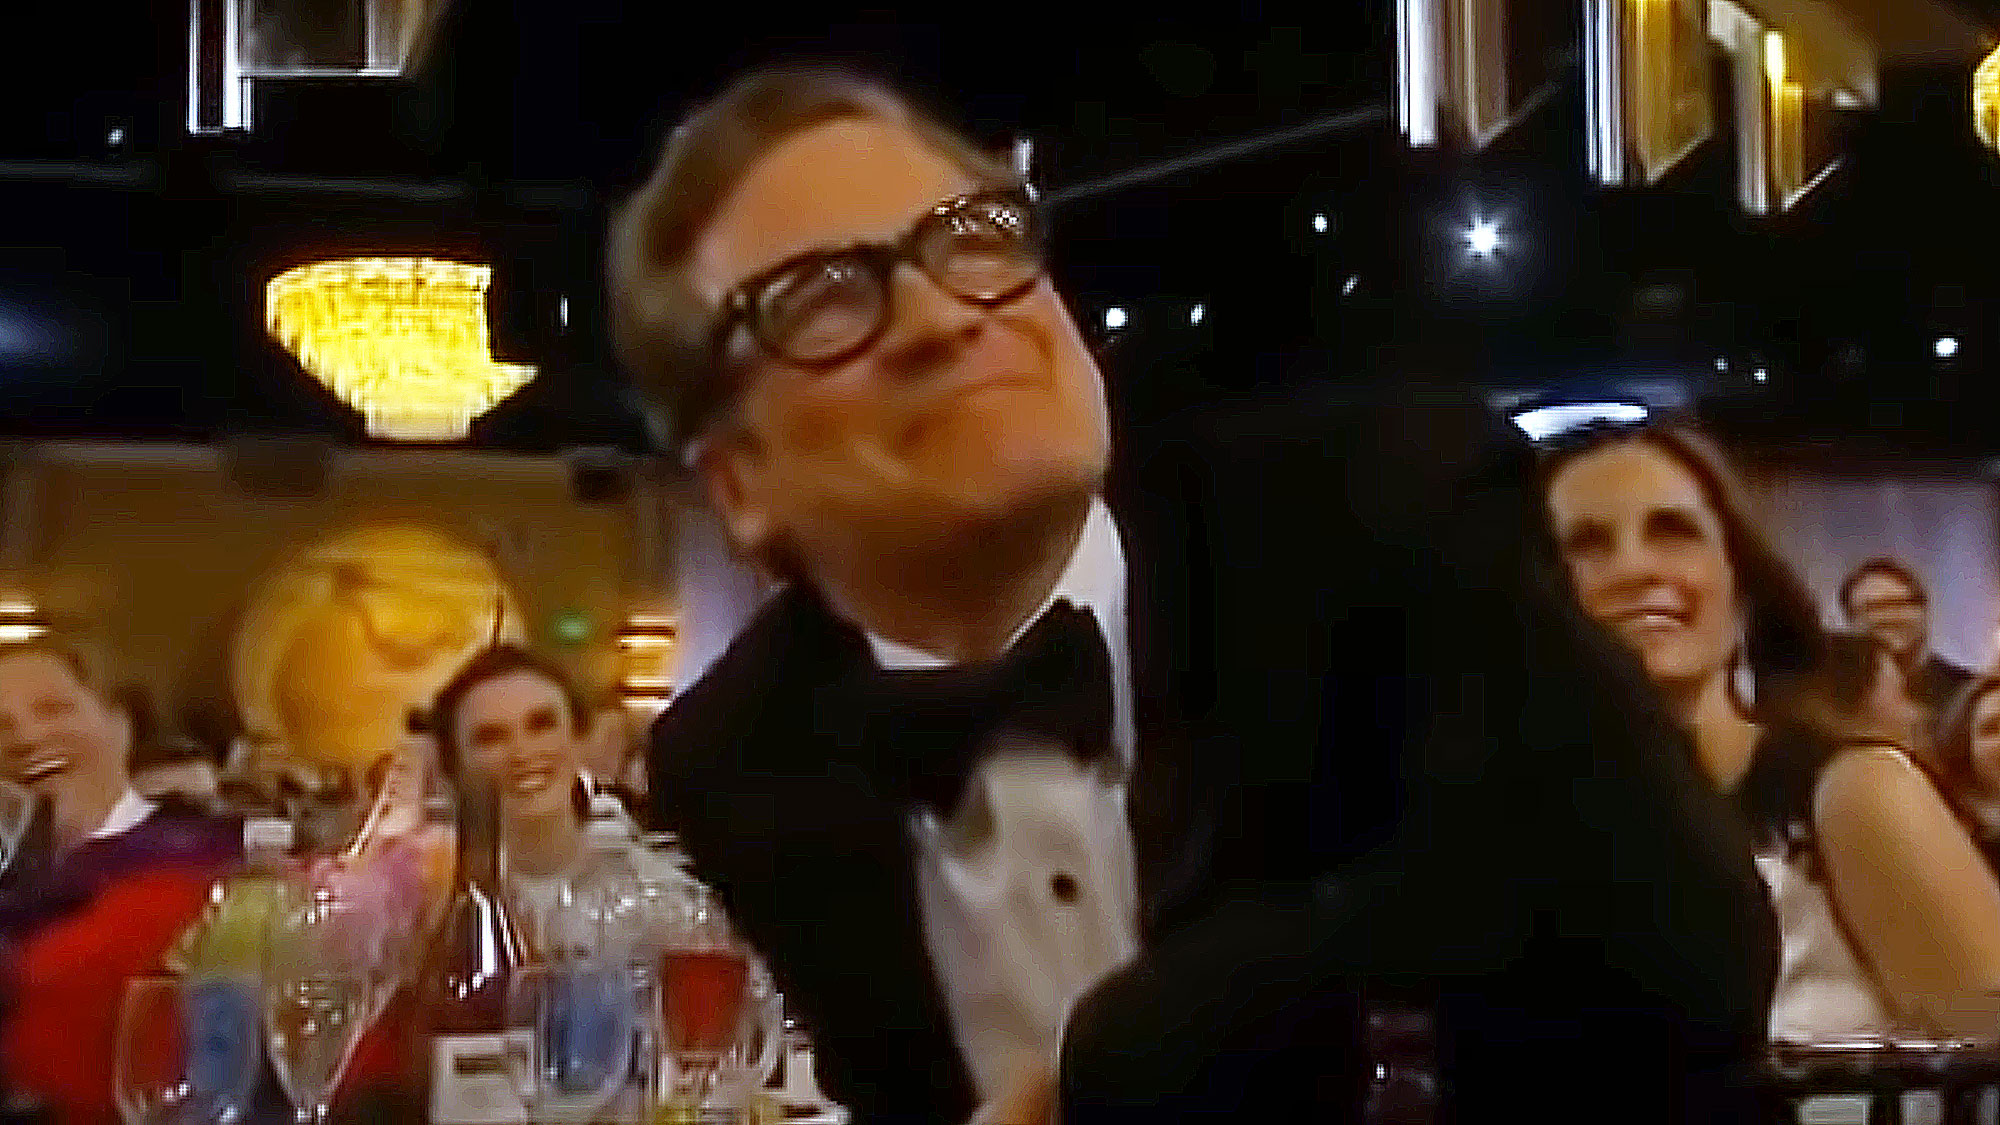 """Awards Shows Audience Reactions Colin Firth Golden Globes 2015 - The actor couldn't help but smile after Fey told Poehler that she would choose him over Colin Farrell during a game of """"Who'd You Rather"""" at the 2015 Golden Globes."""